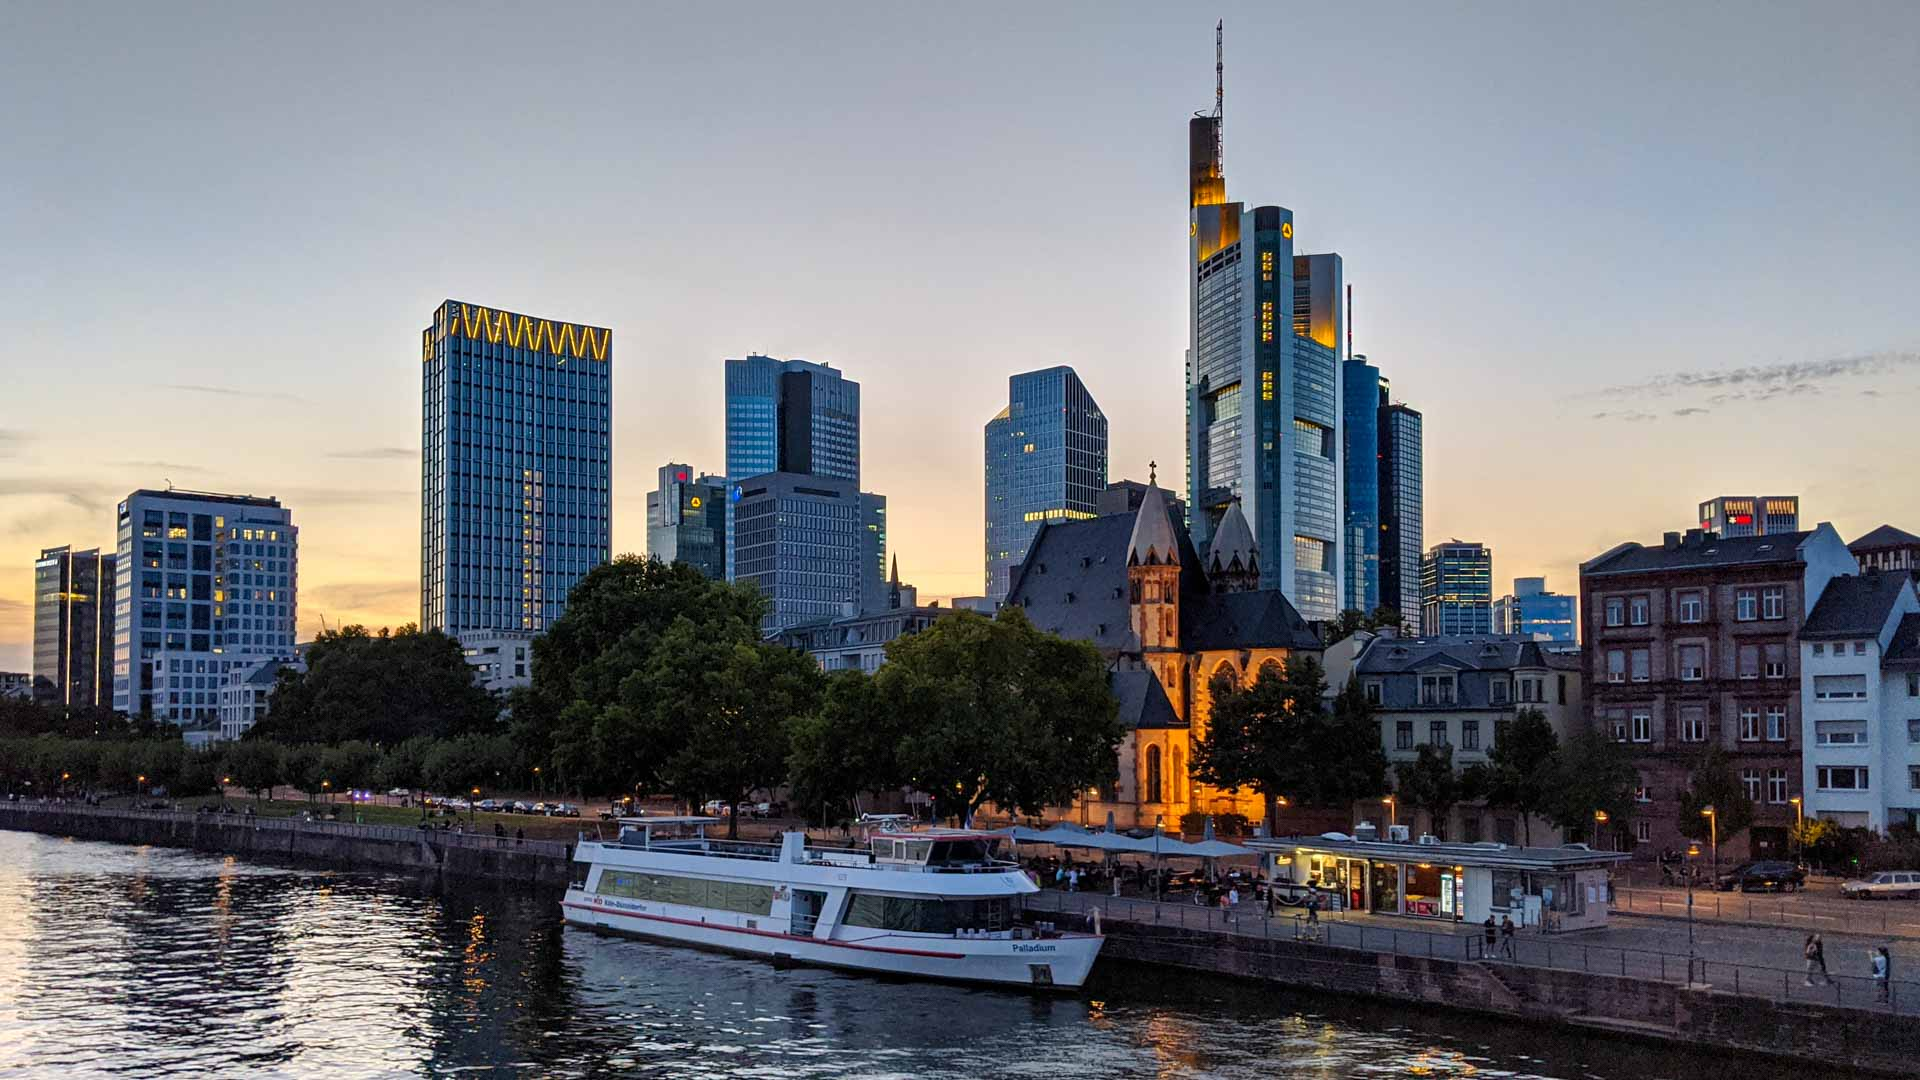 Sunset at the Maikai, Frankfurt